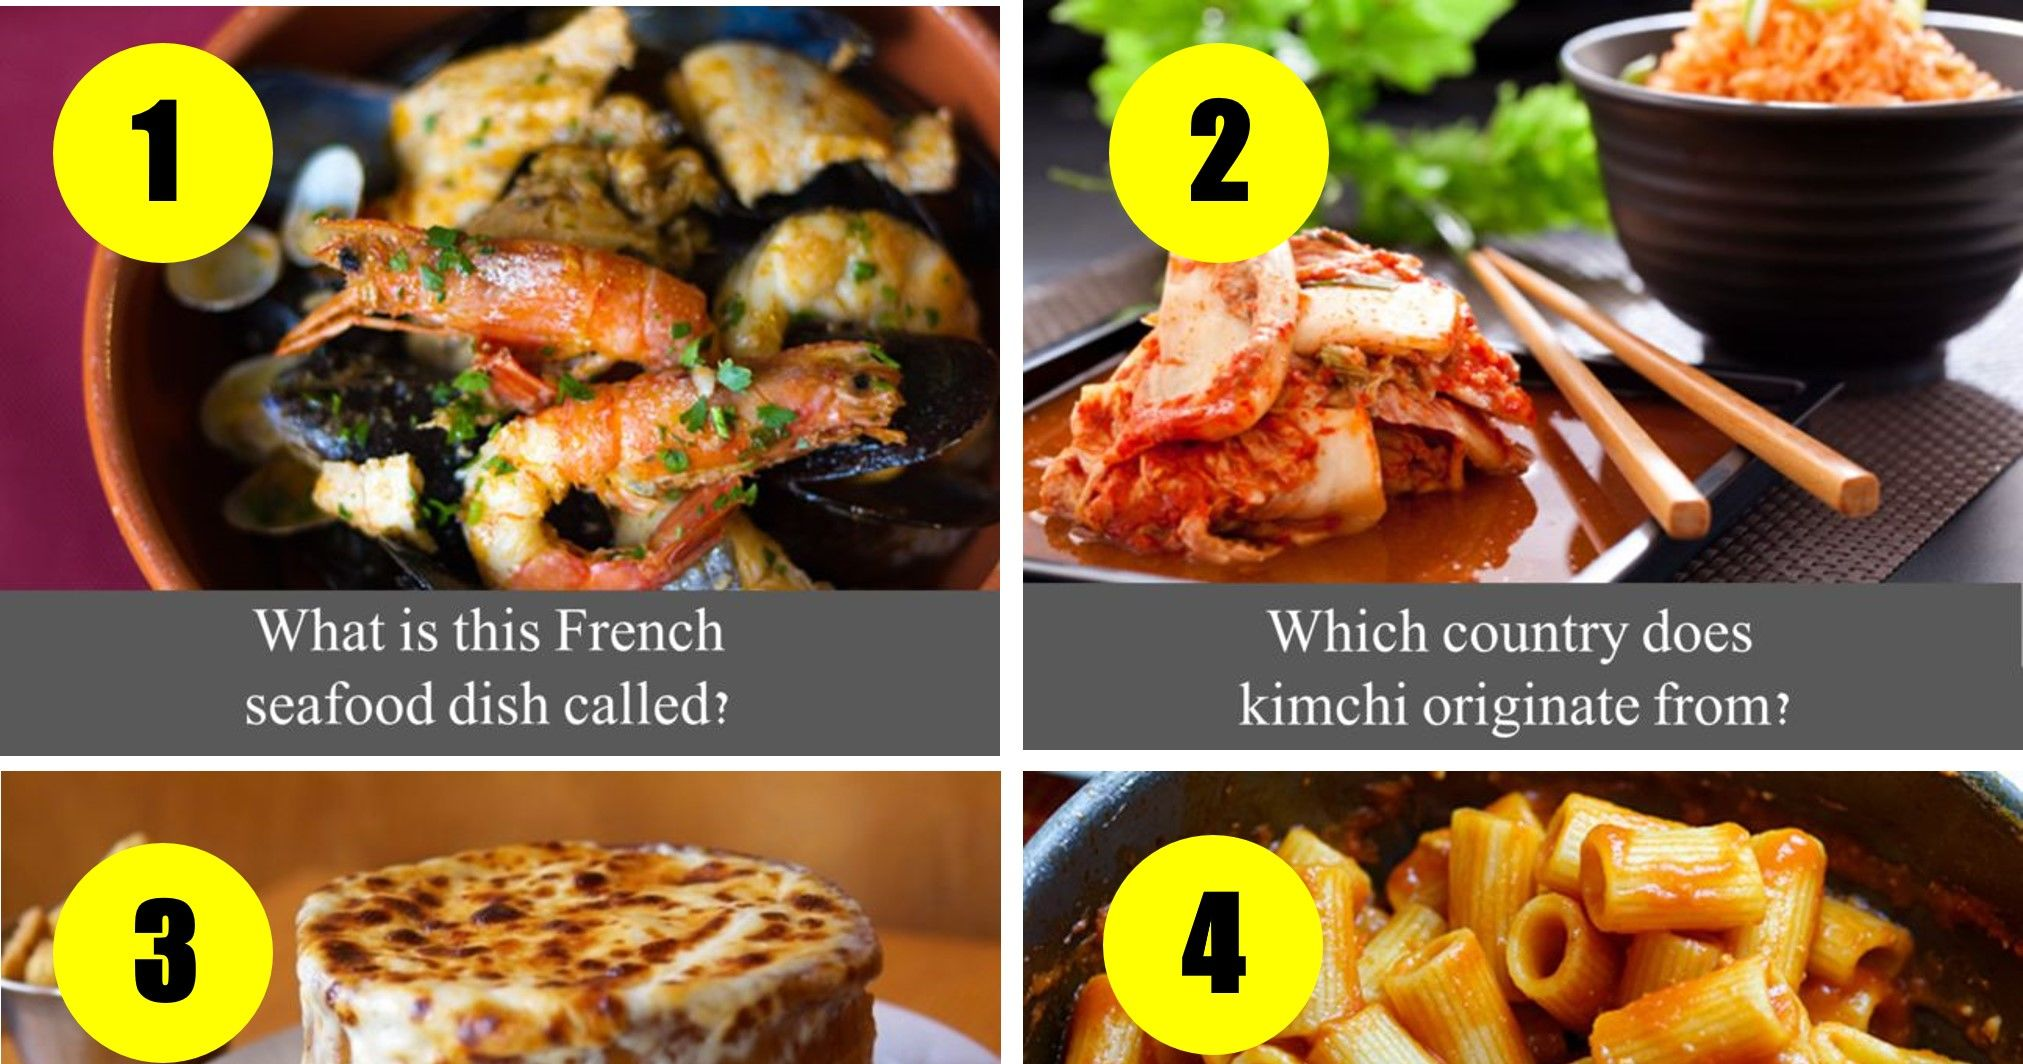 Can You Pass This Spanish Food Test